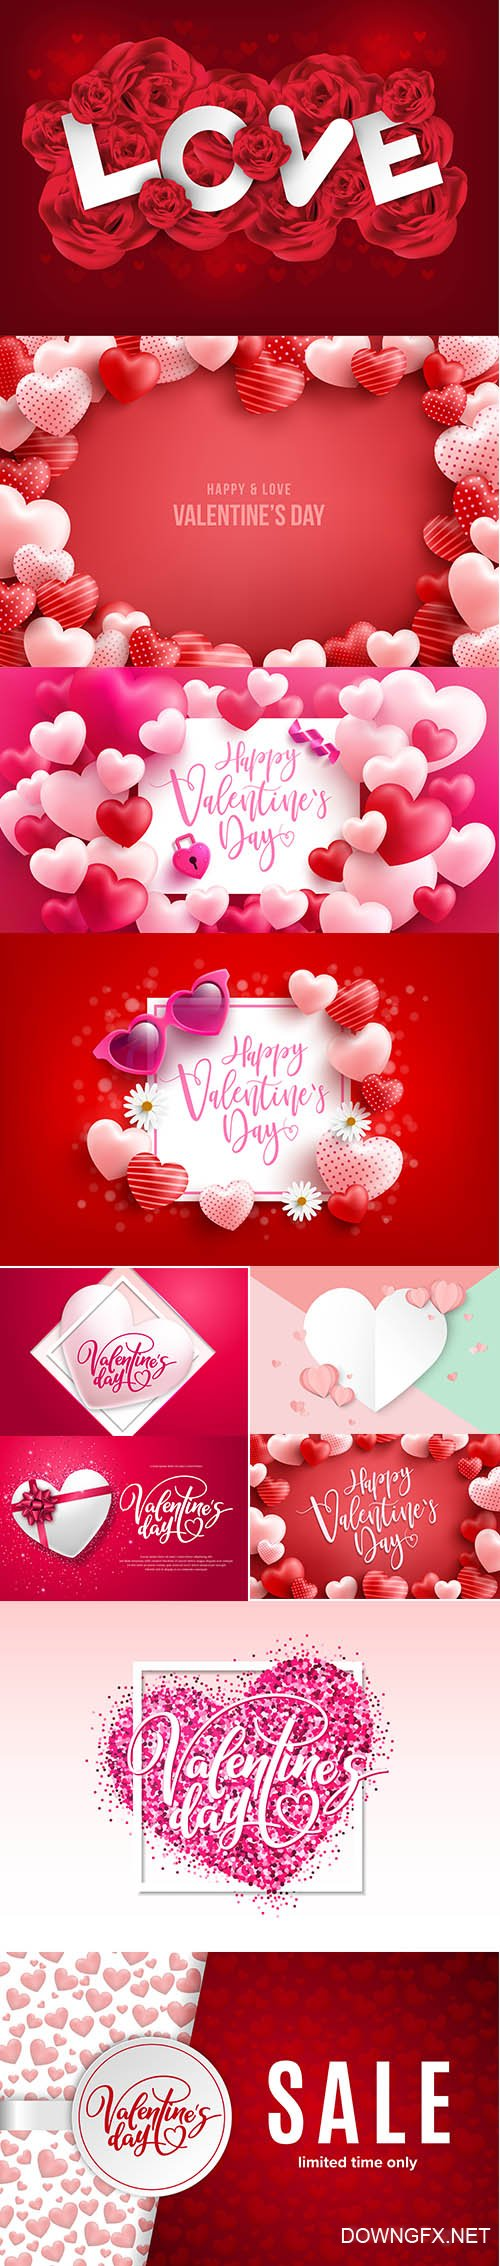 Set of Romantic Valentines Day Illustrations Vol 5